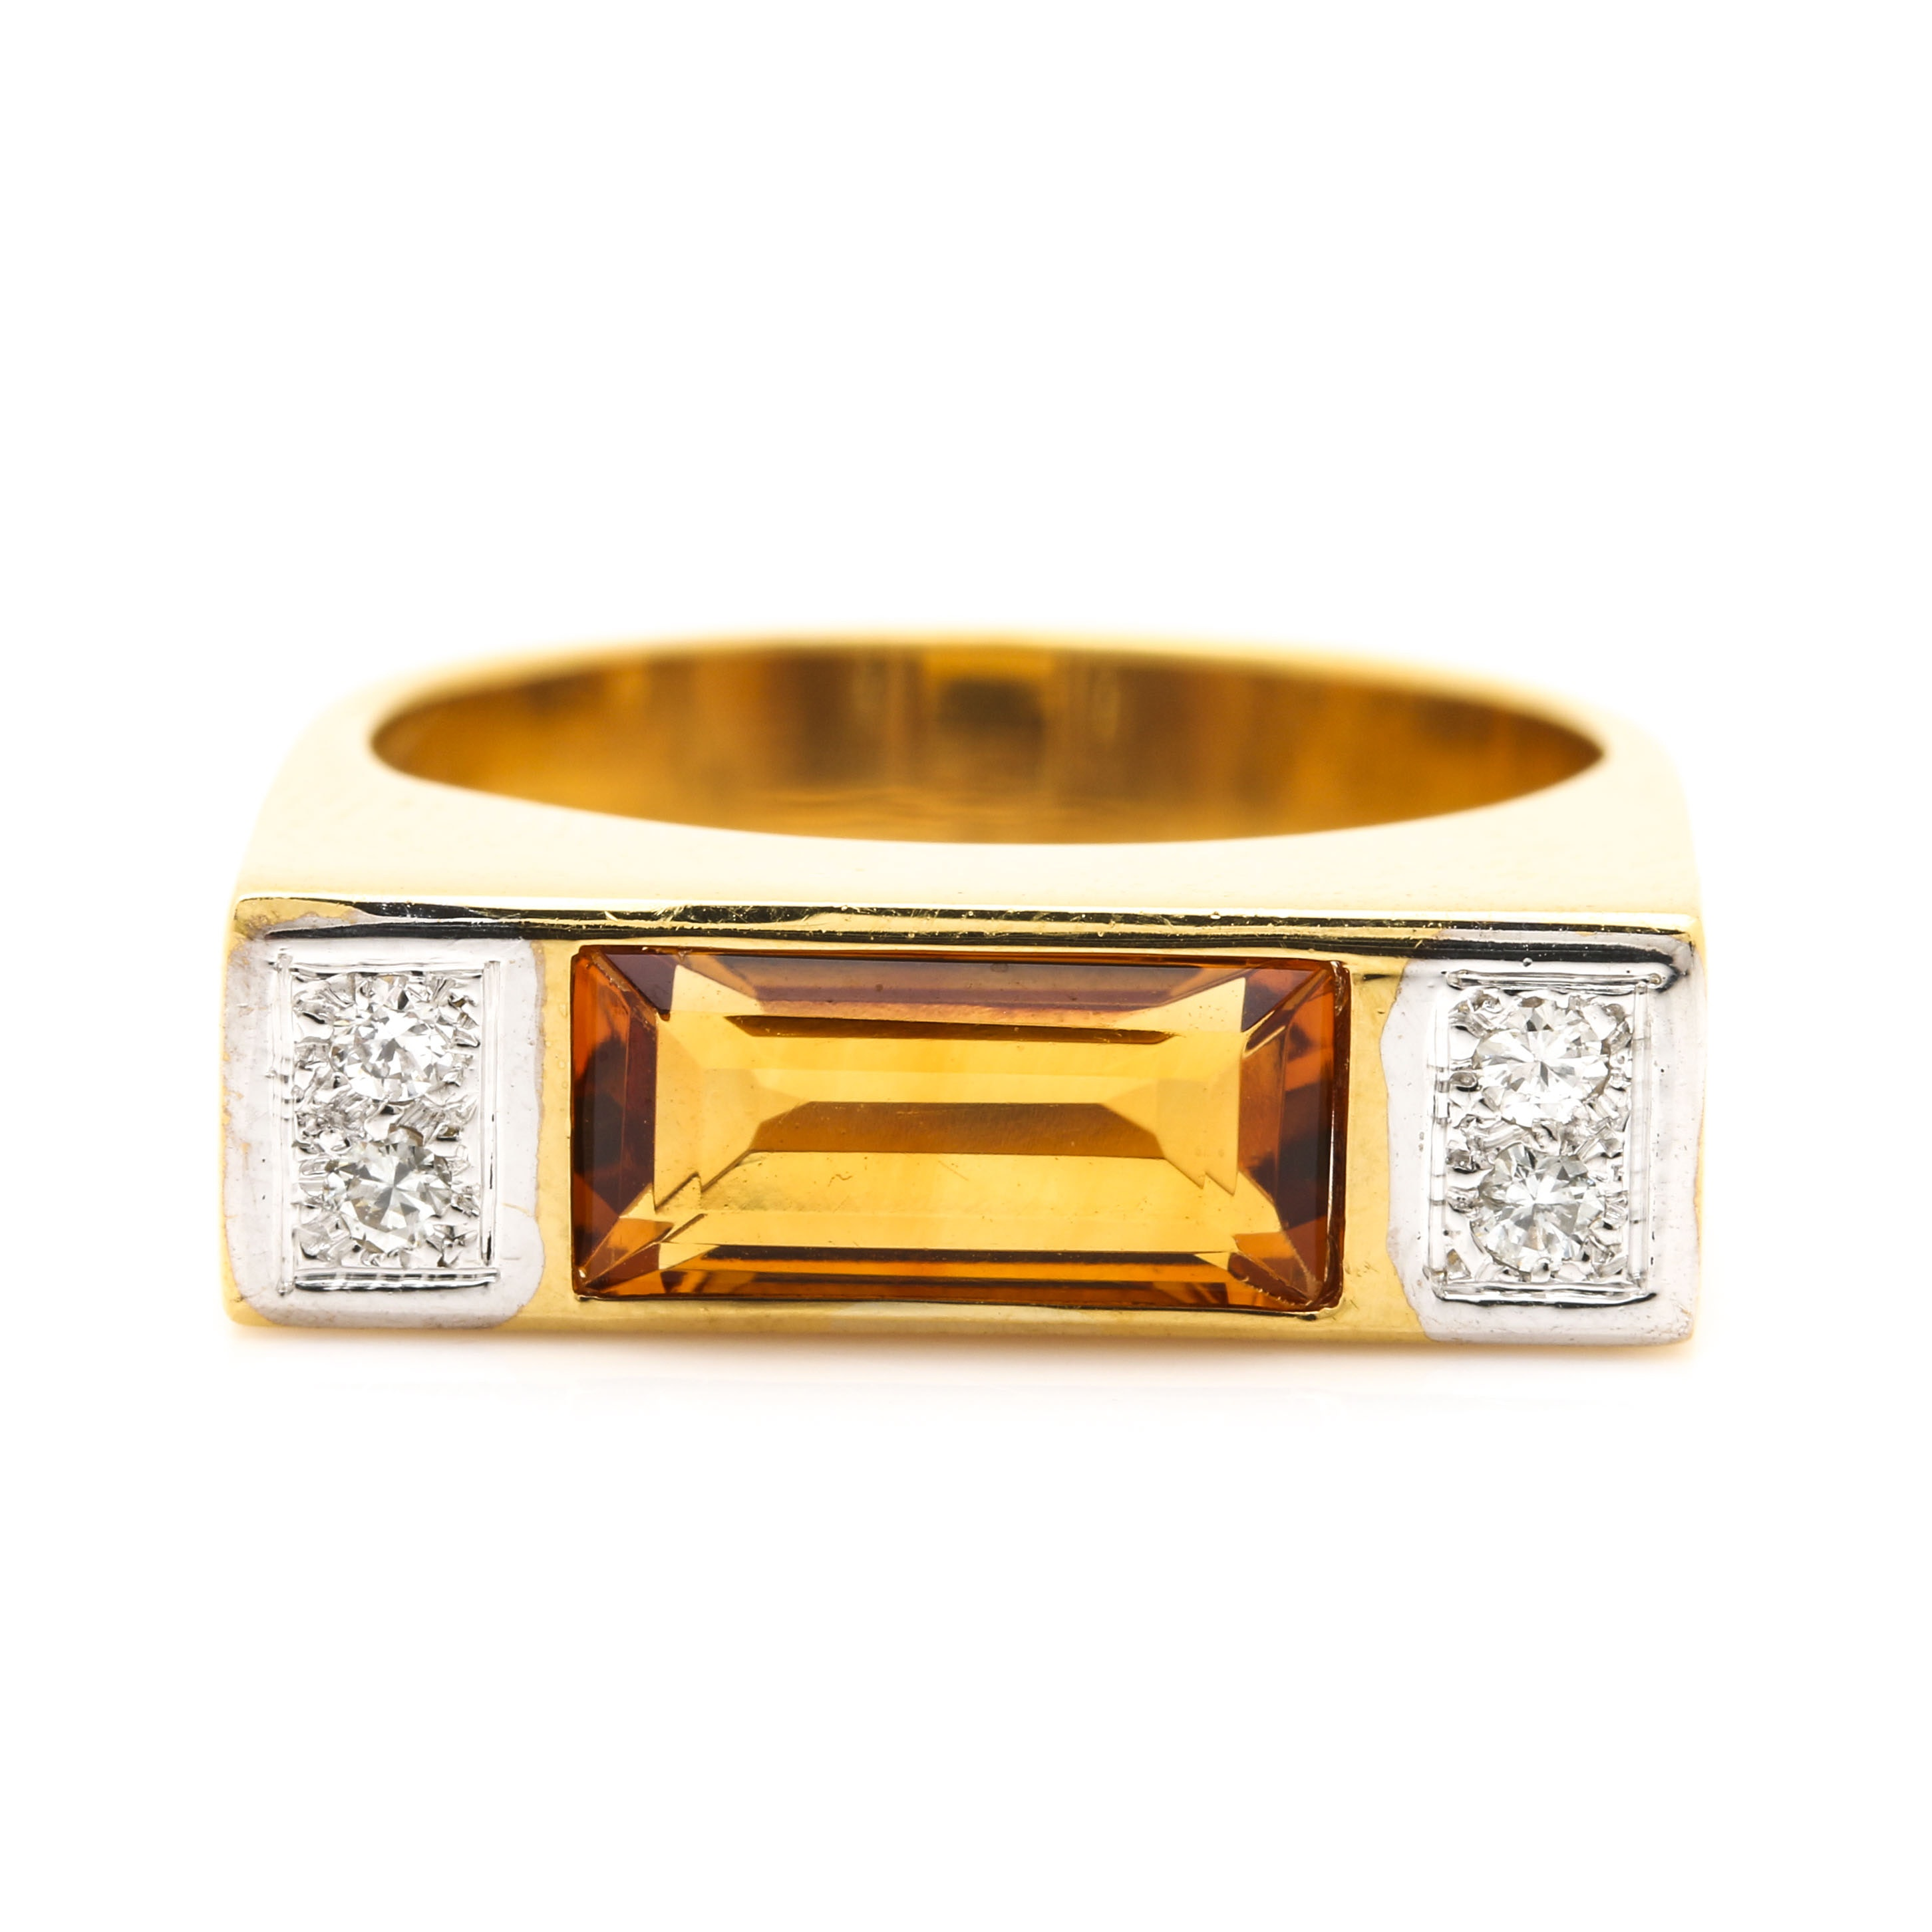 Ester Gallant 14K Yellow Gold Citrine and Diamond Ring With White Gold Accents